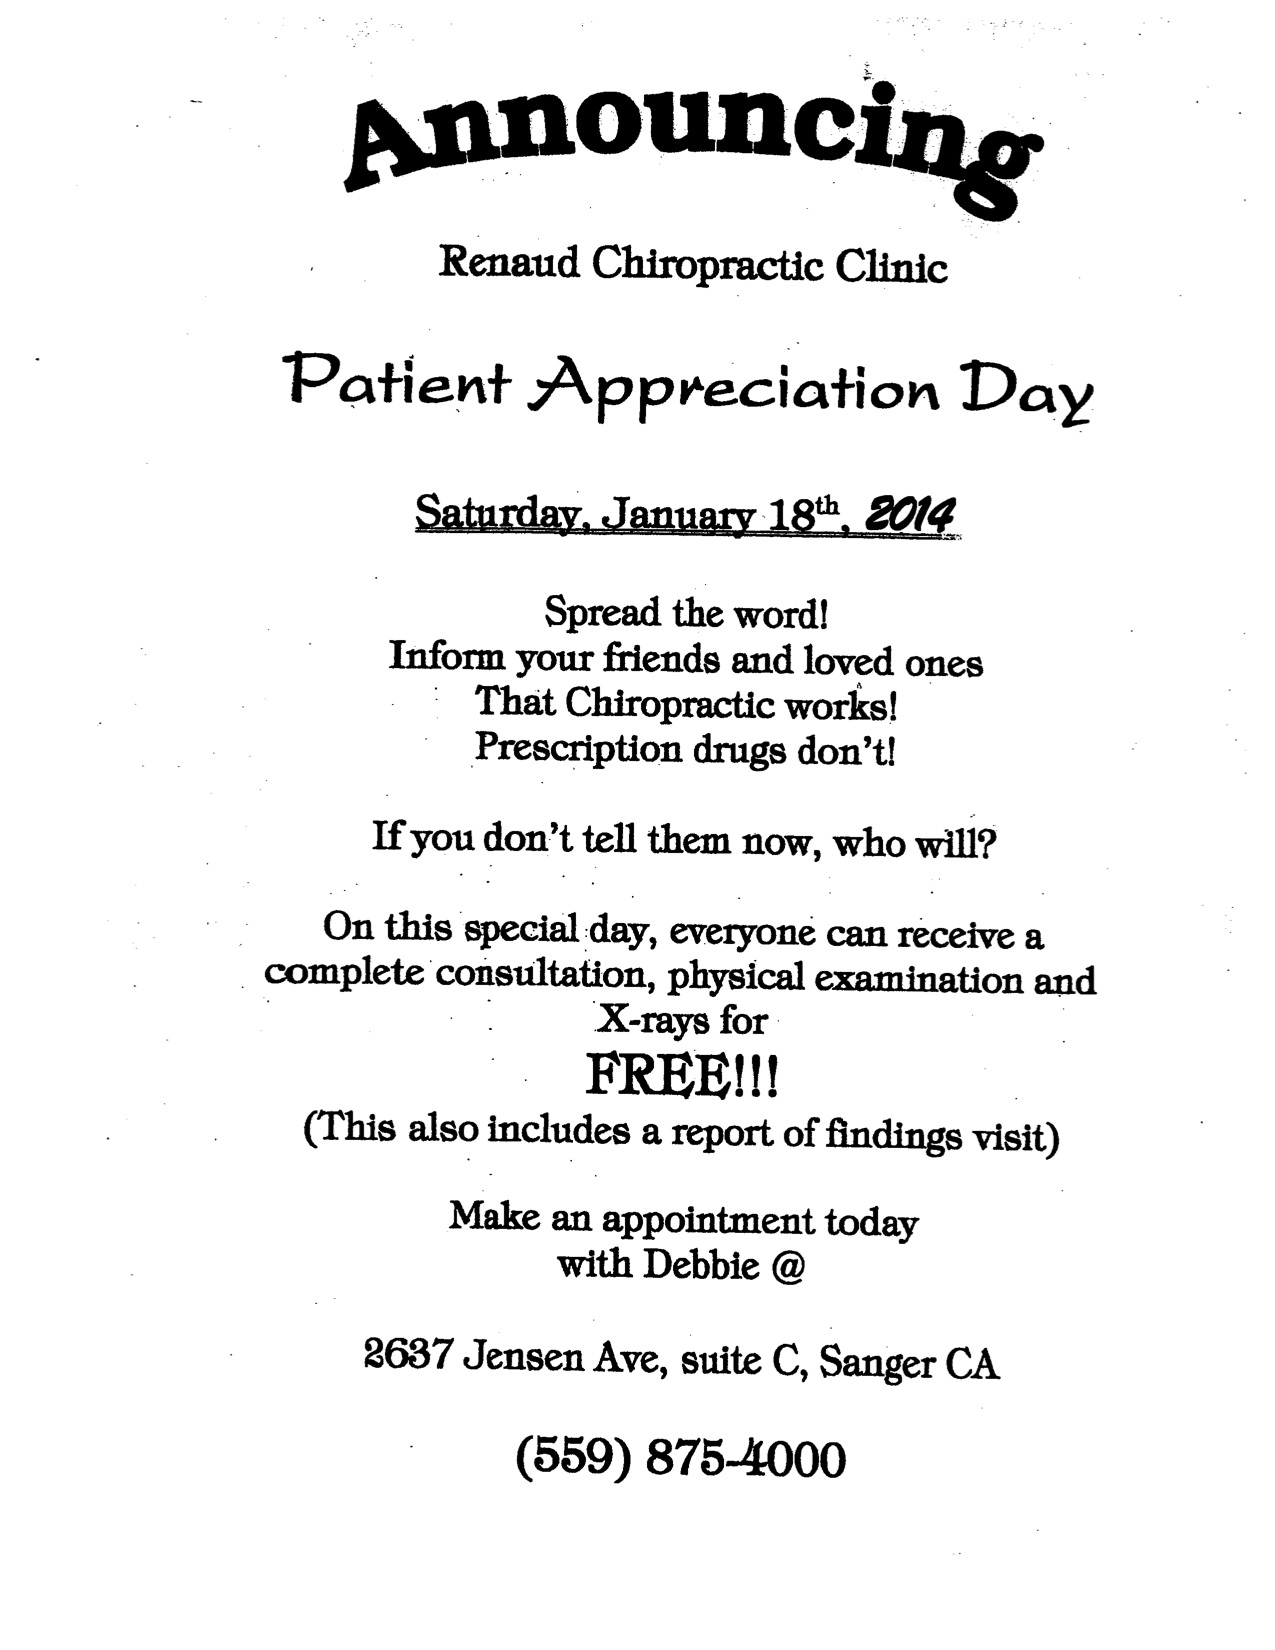 renaud chiropractic patient appreciation day